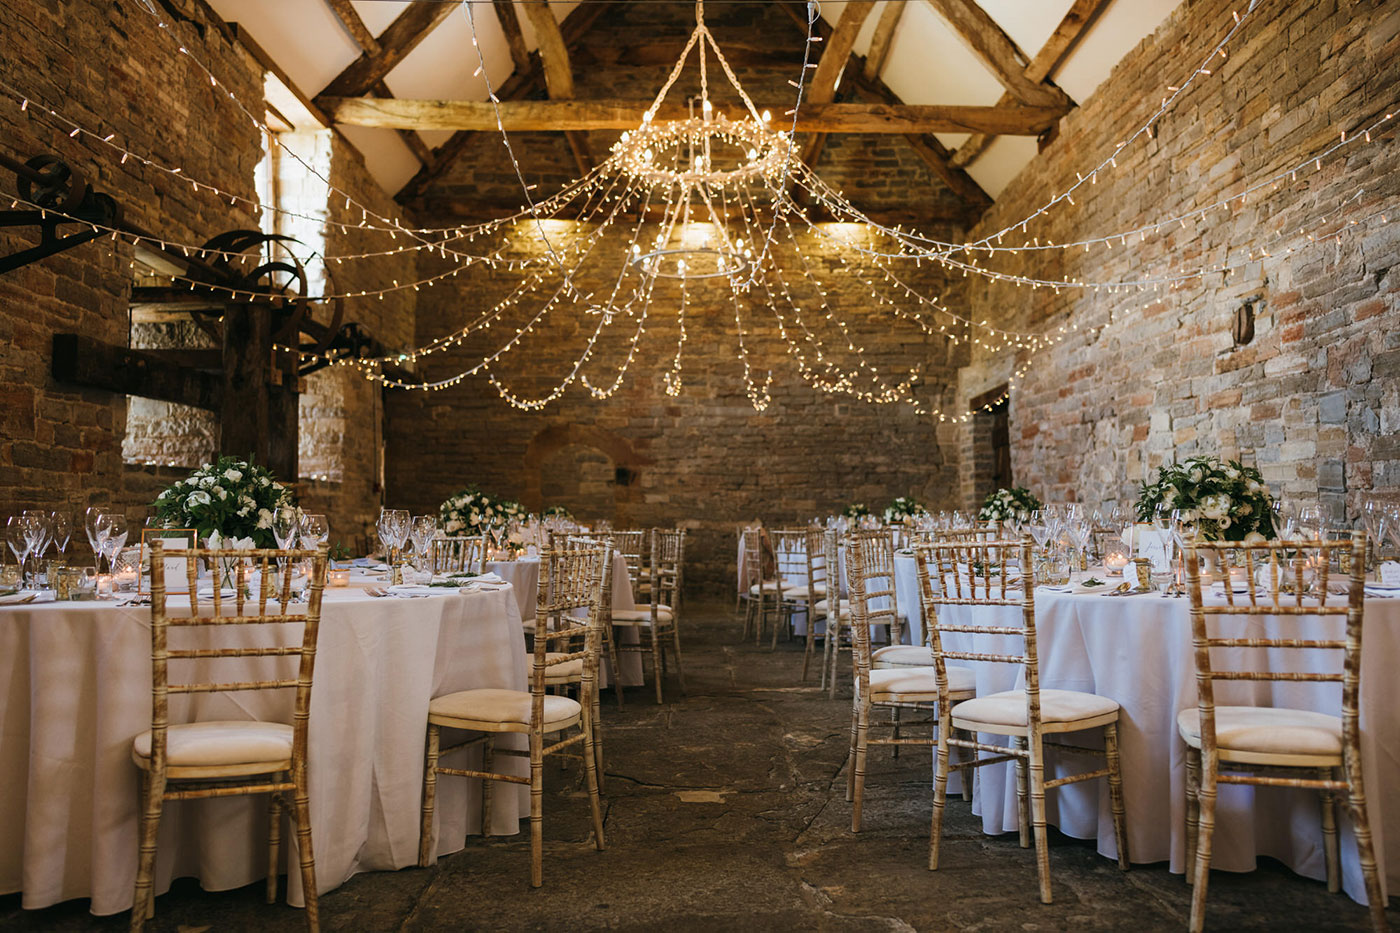 Almonry Barn Wedding Venue, Somerset | Wedinspire